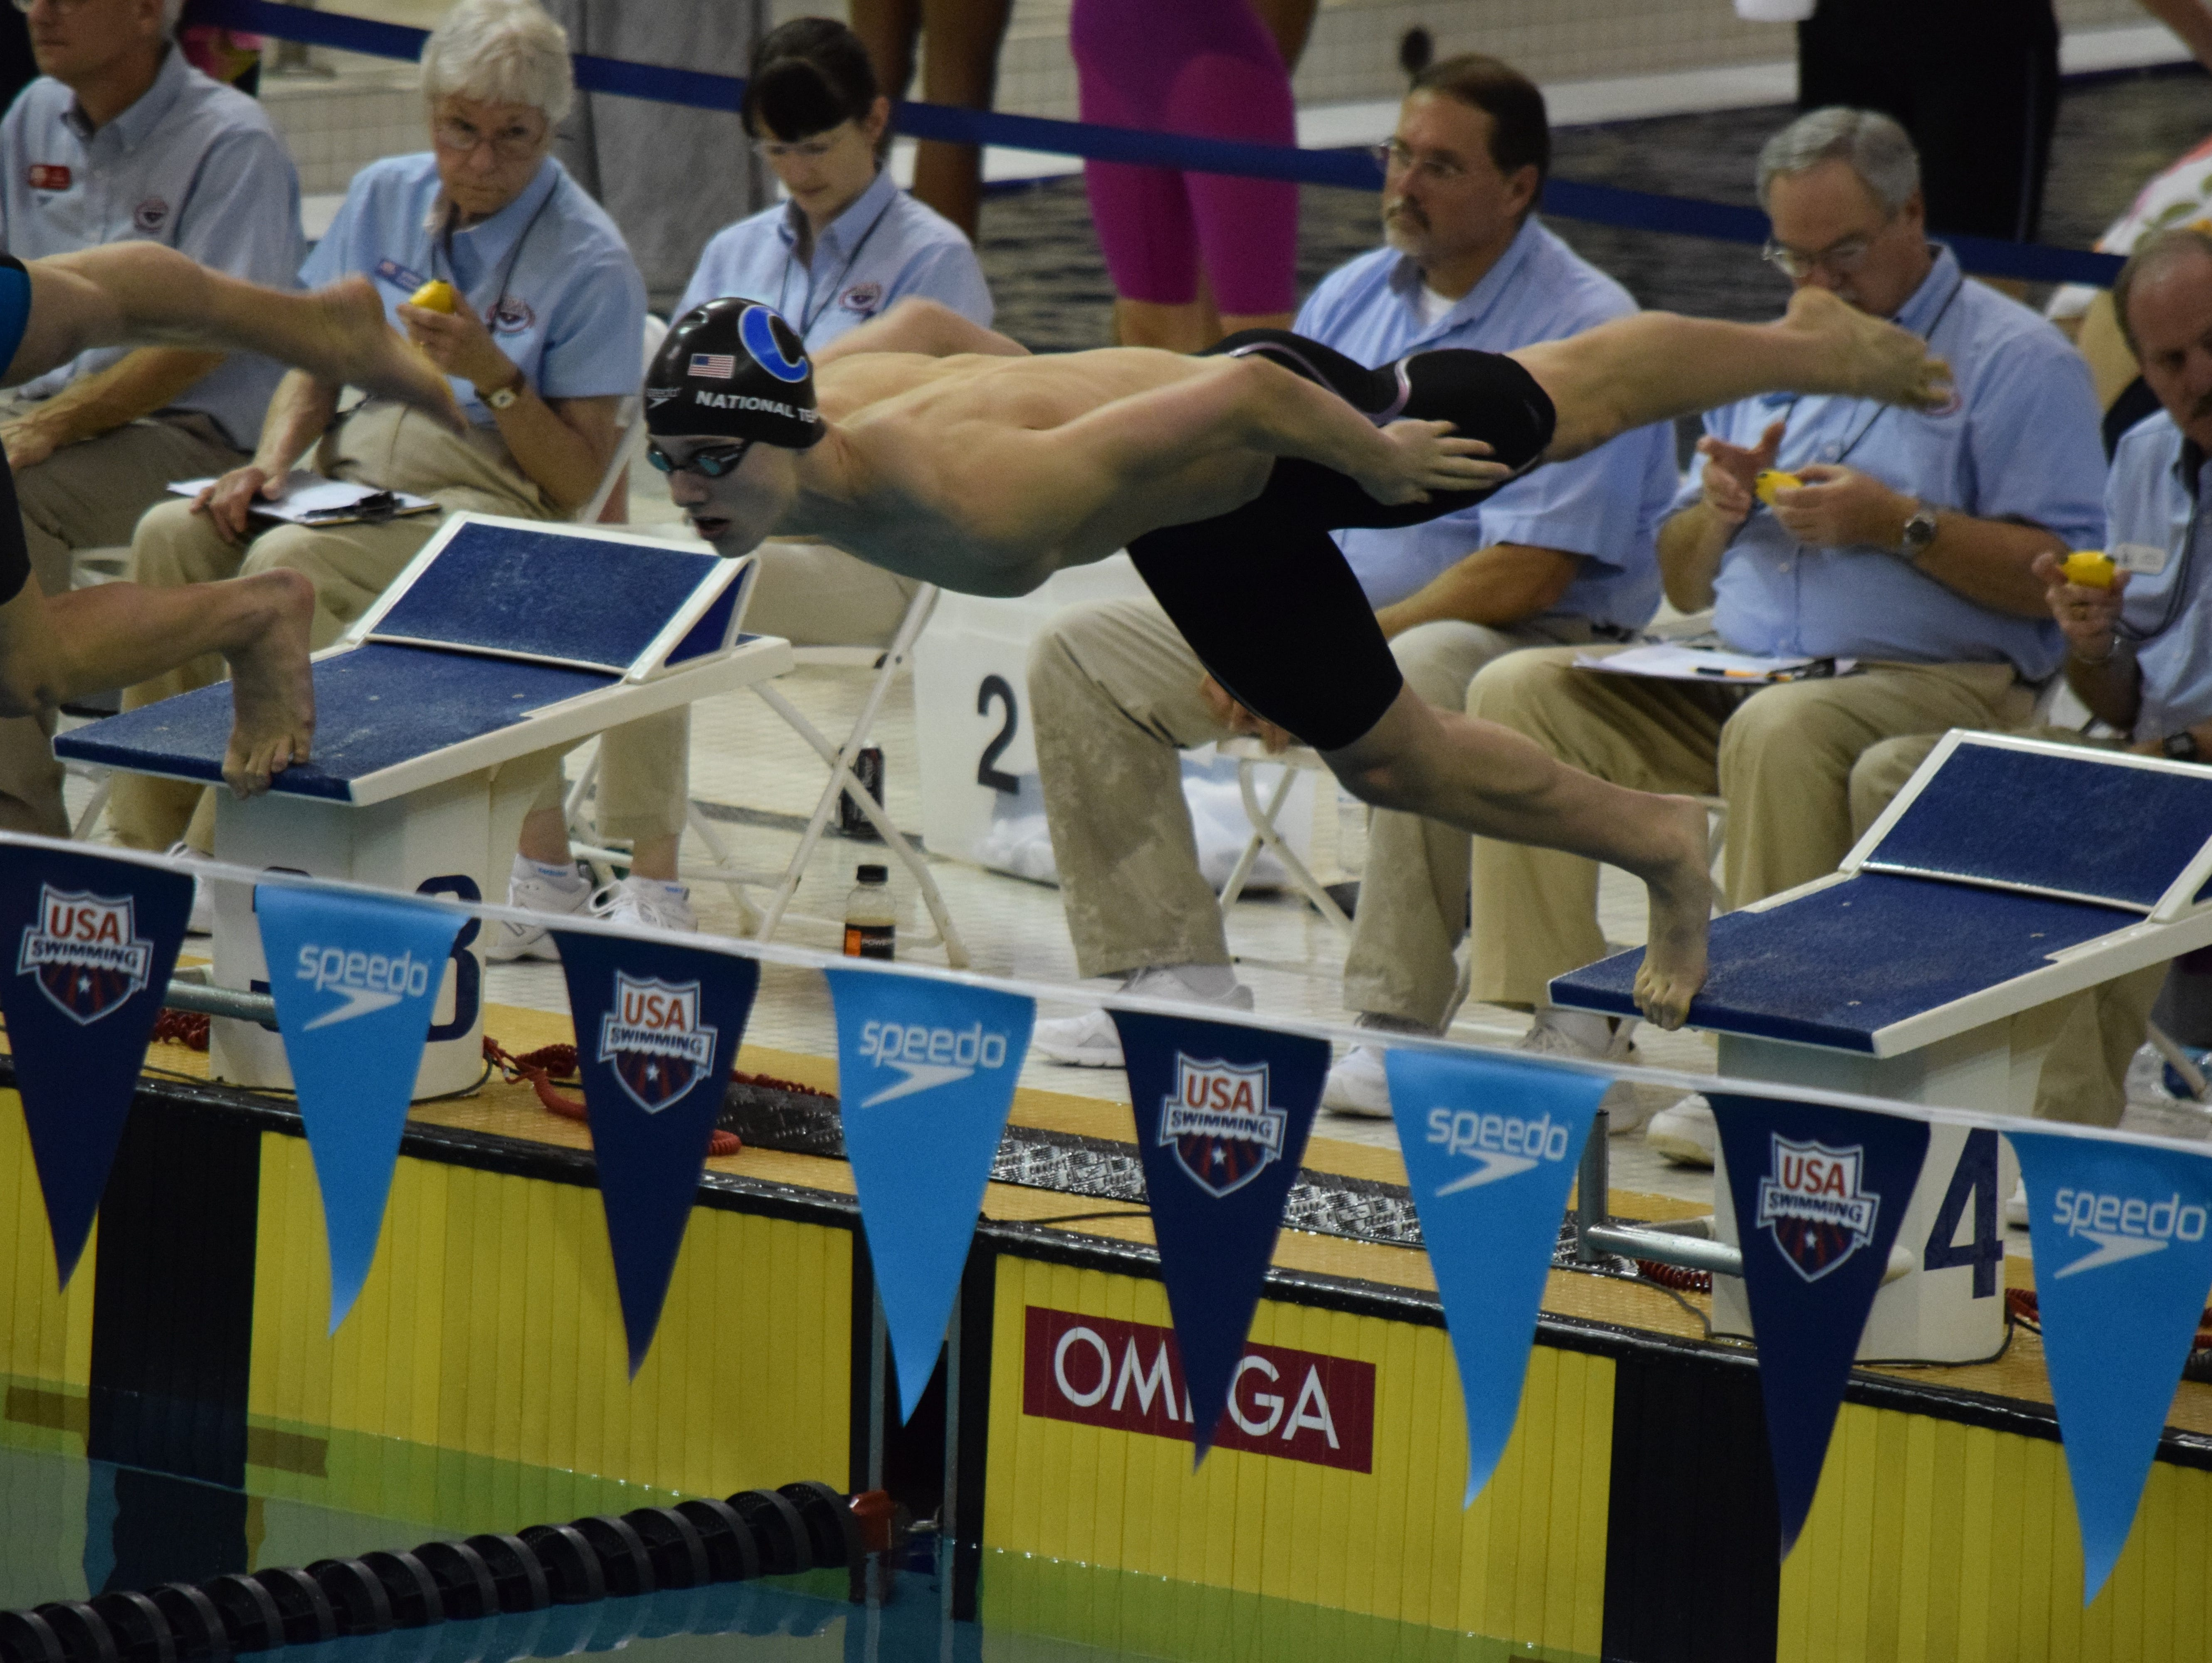 Carmel swimmer Drew Kibler, 16, ranks No. 2 in the 50- and 100-yard freestyles.